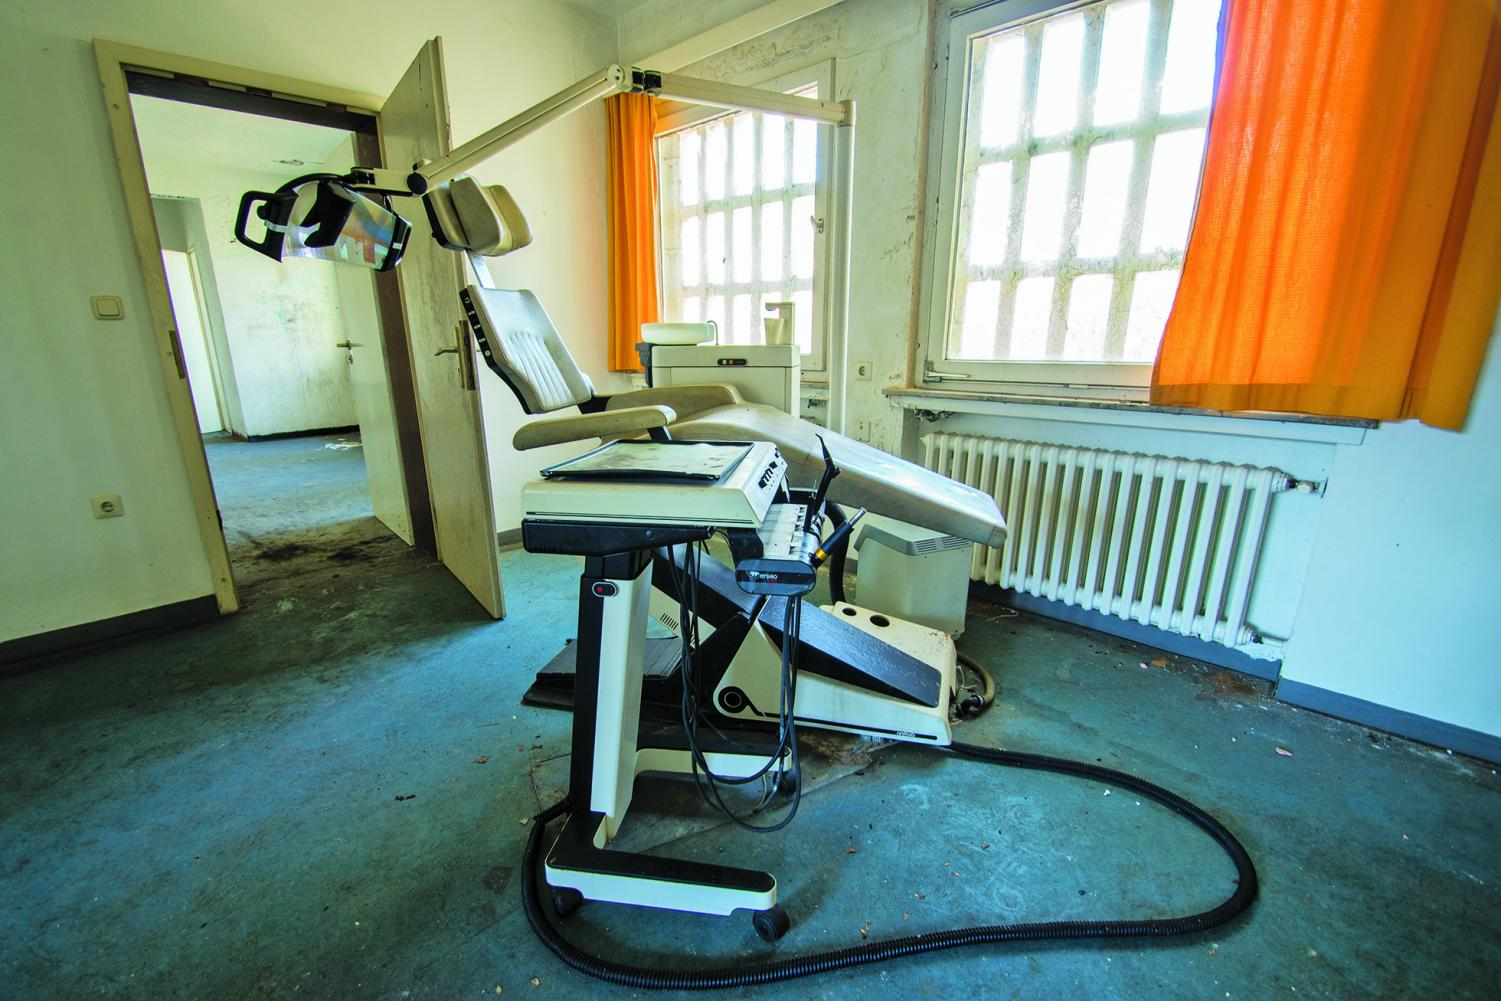 Dentistry in prisons has gone downhill in recent years.